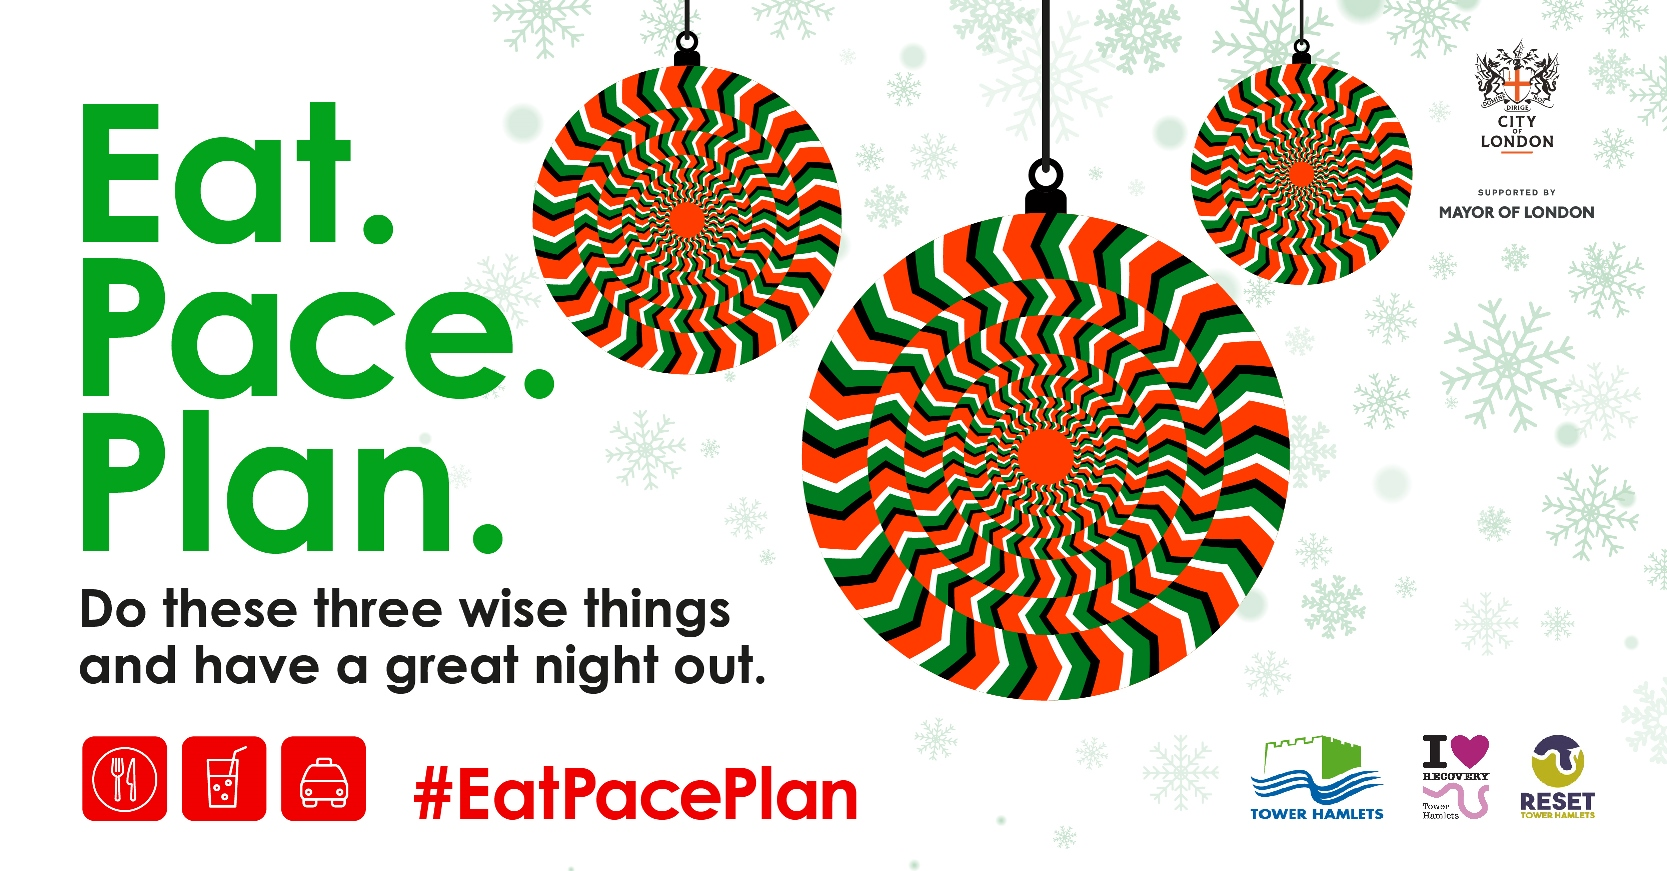 Eat pace plan_Tower Hamlets-01